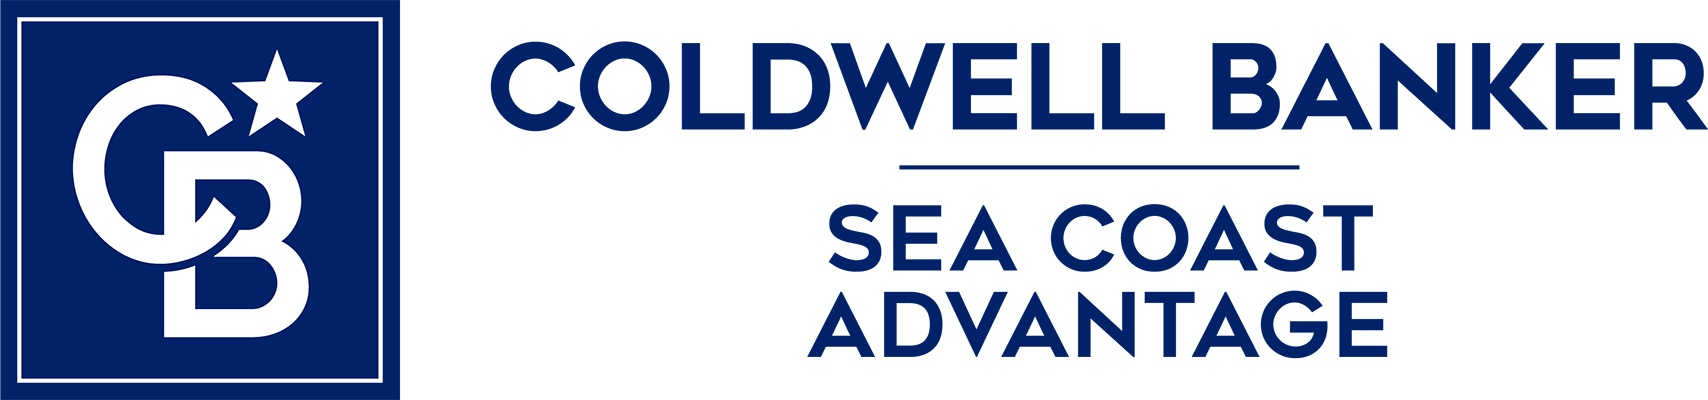 Kathy Bush - Coldwell Banker Sea Coast Advantage Realty